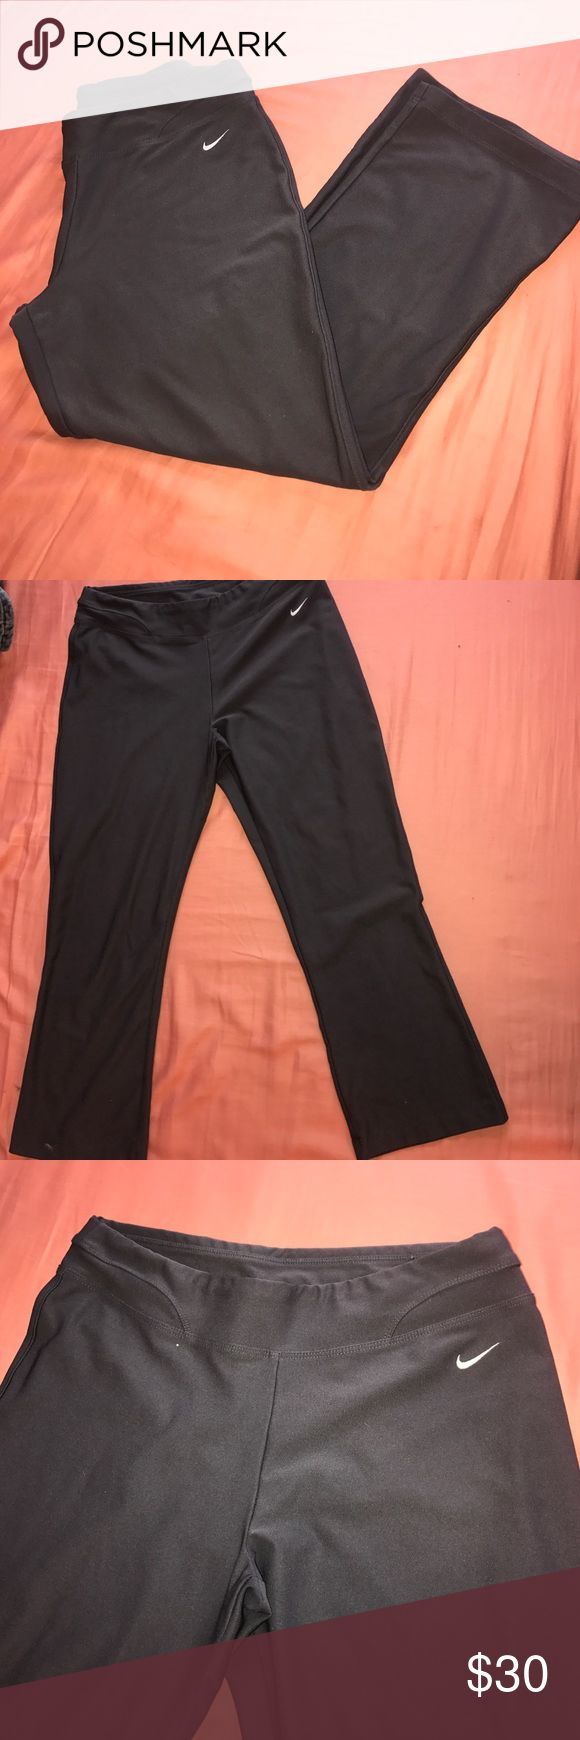 Nike Dri-Fit Training Capris Mid-rise; Excellent Condition; Stops right at the calf muscles; Great for working out or athletic activity; Satisfaction guaranteed! MAKE ME AN OFFER. Want me to model it? Just comment below! Nike Pants Capris